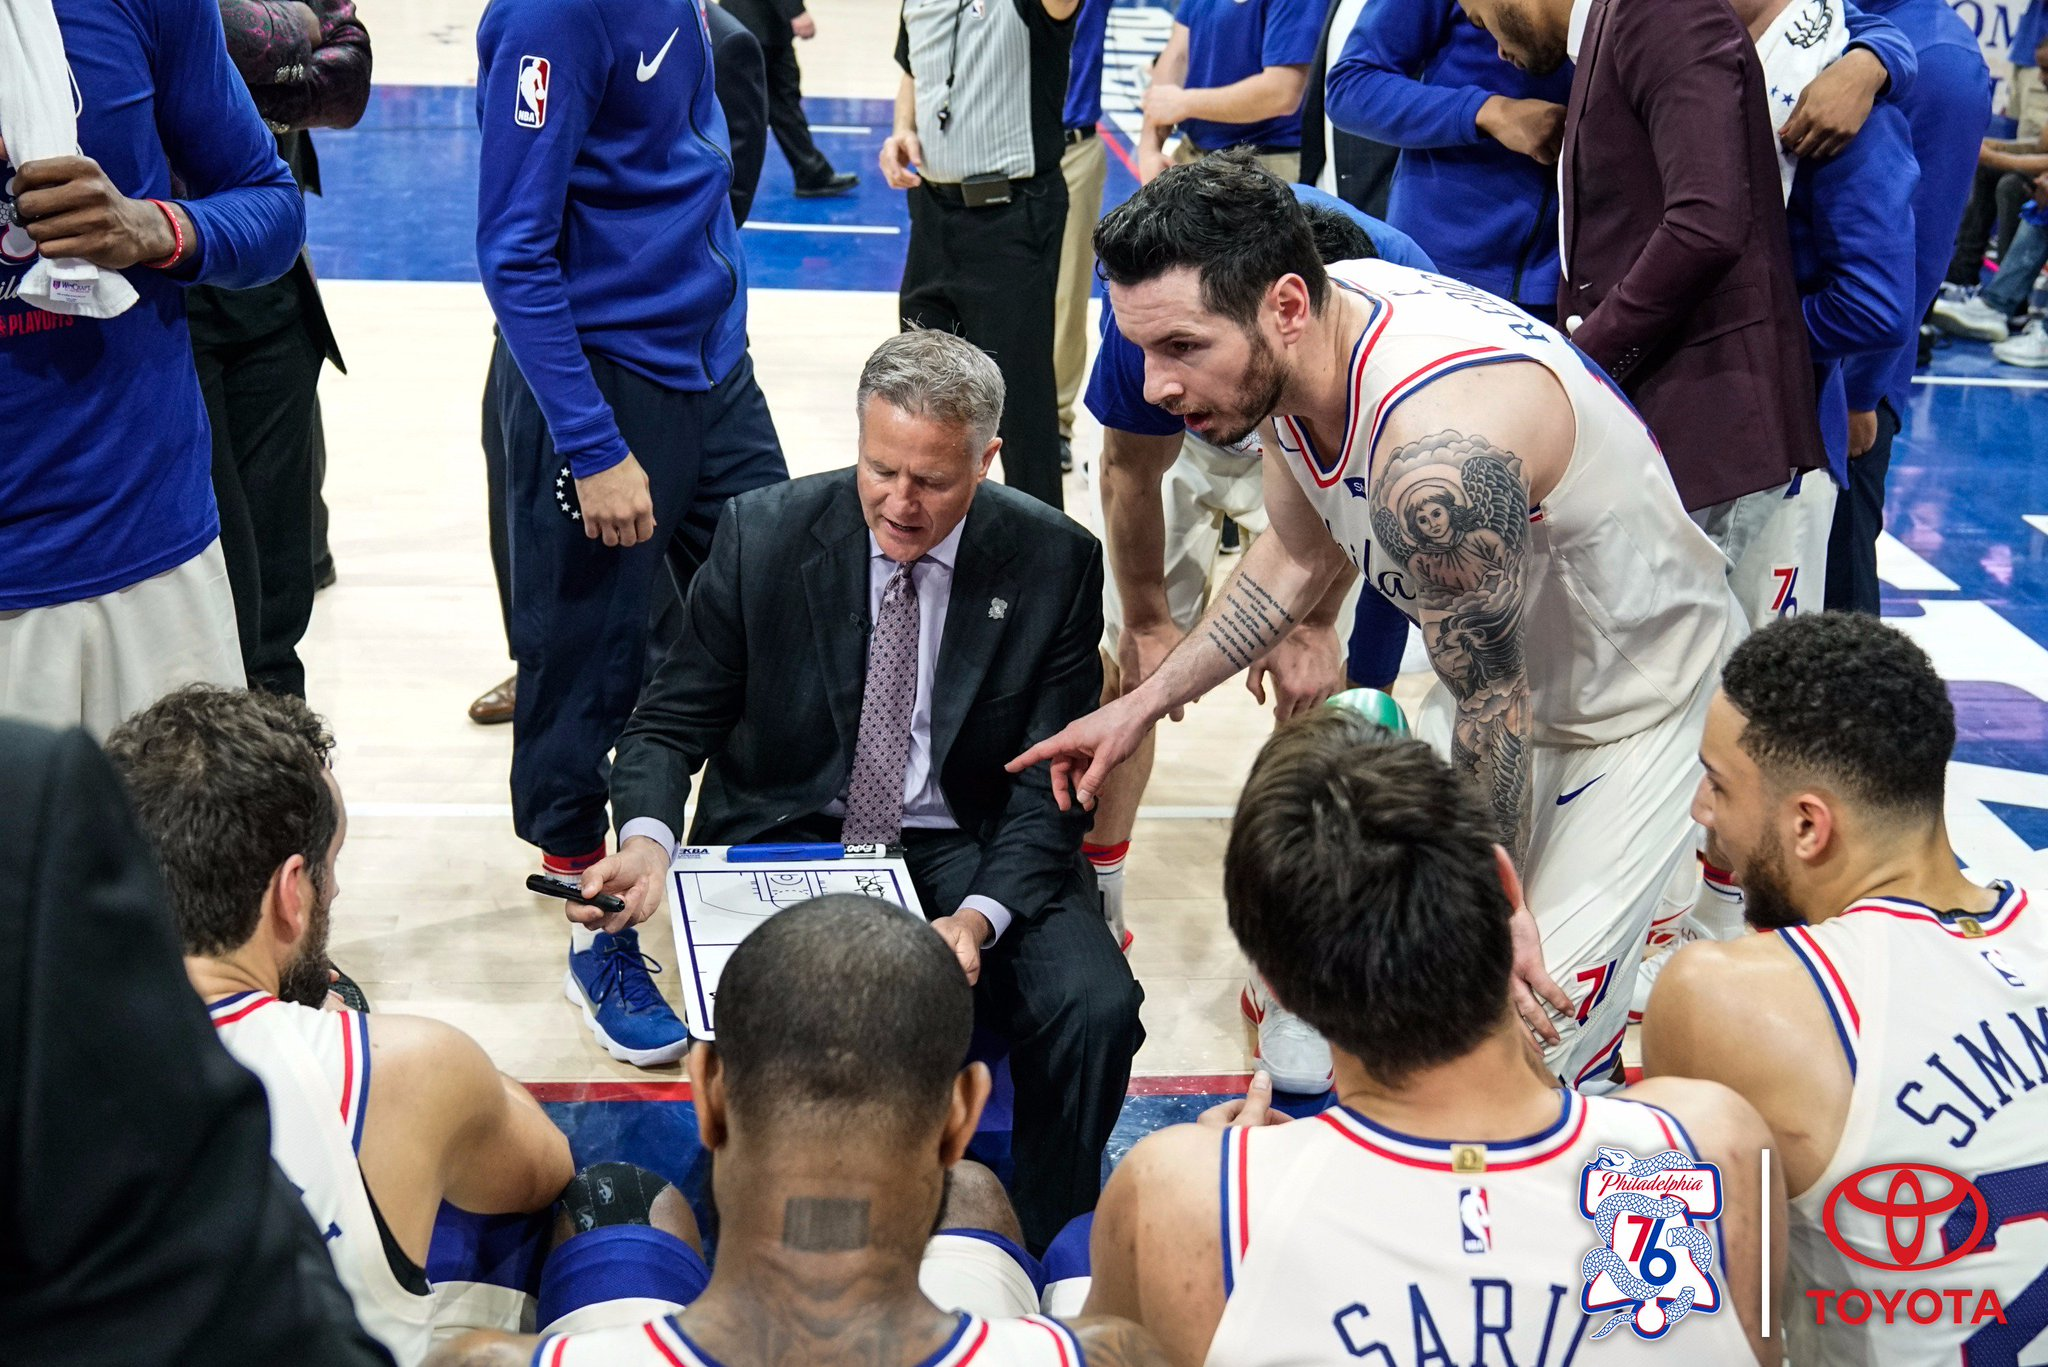 Early Adjustment Sets Tone for Series.  #PhilaUnite x #HereTheyCome  via @brianseltzer, https://t.co/Oz0cqK3M77 https://t.co/jAvJTKX1Yg